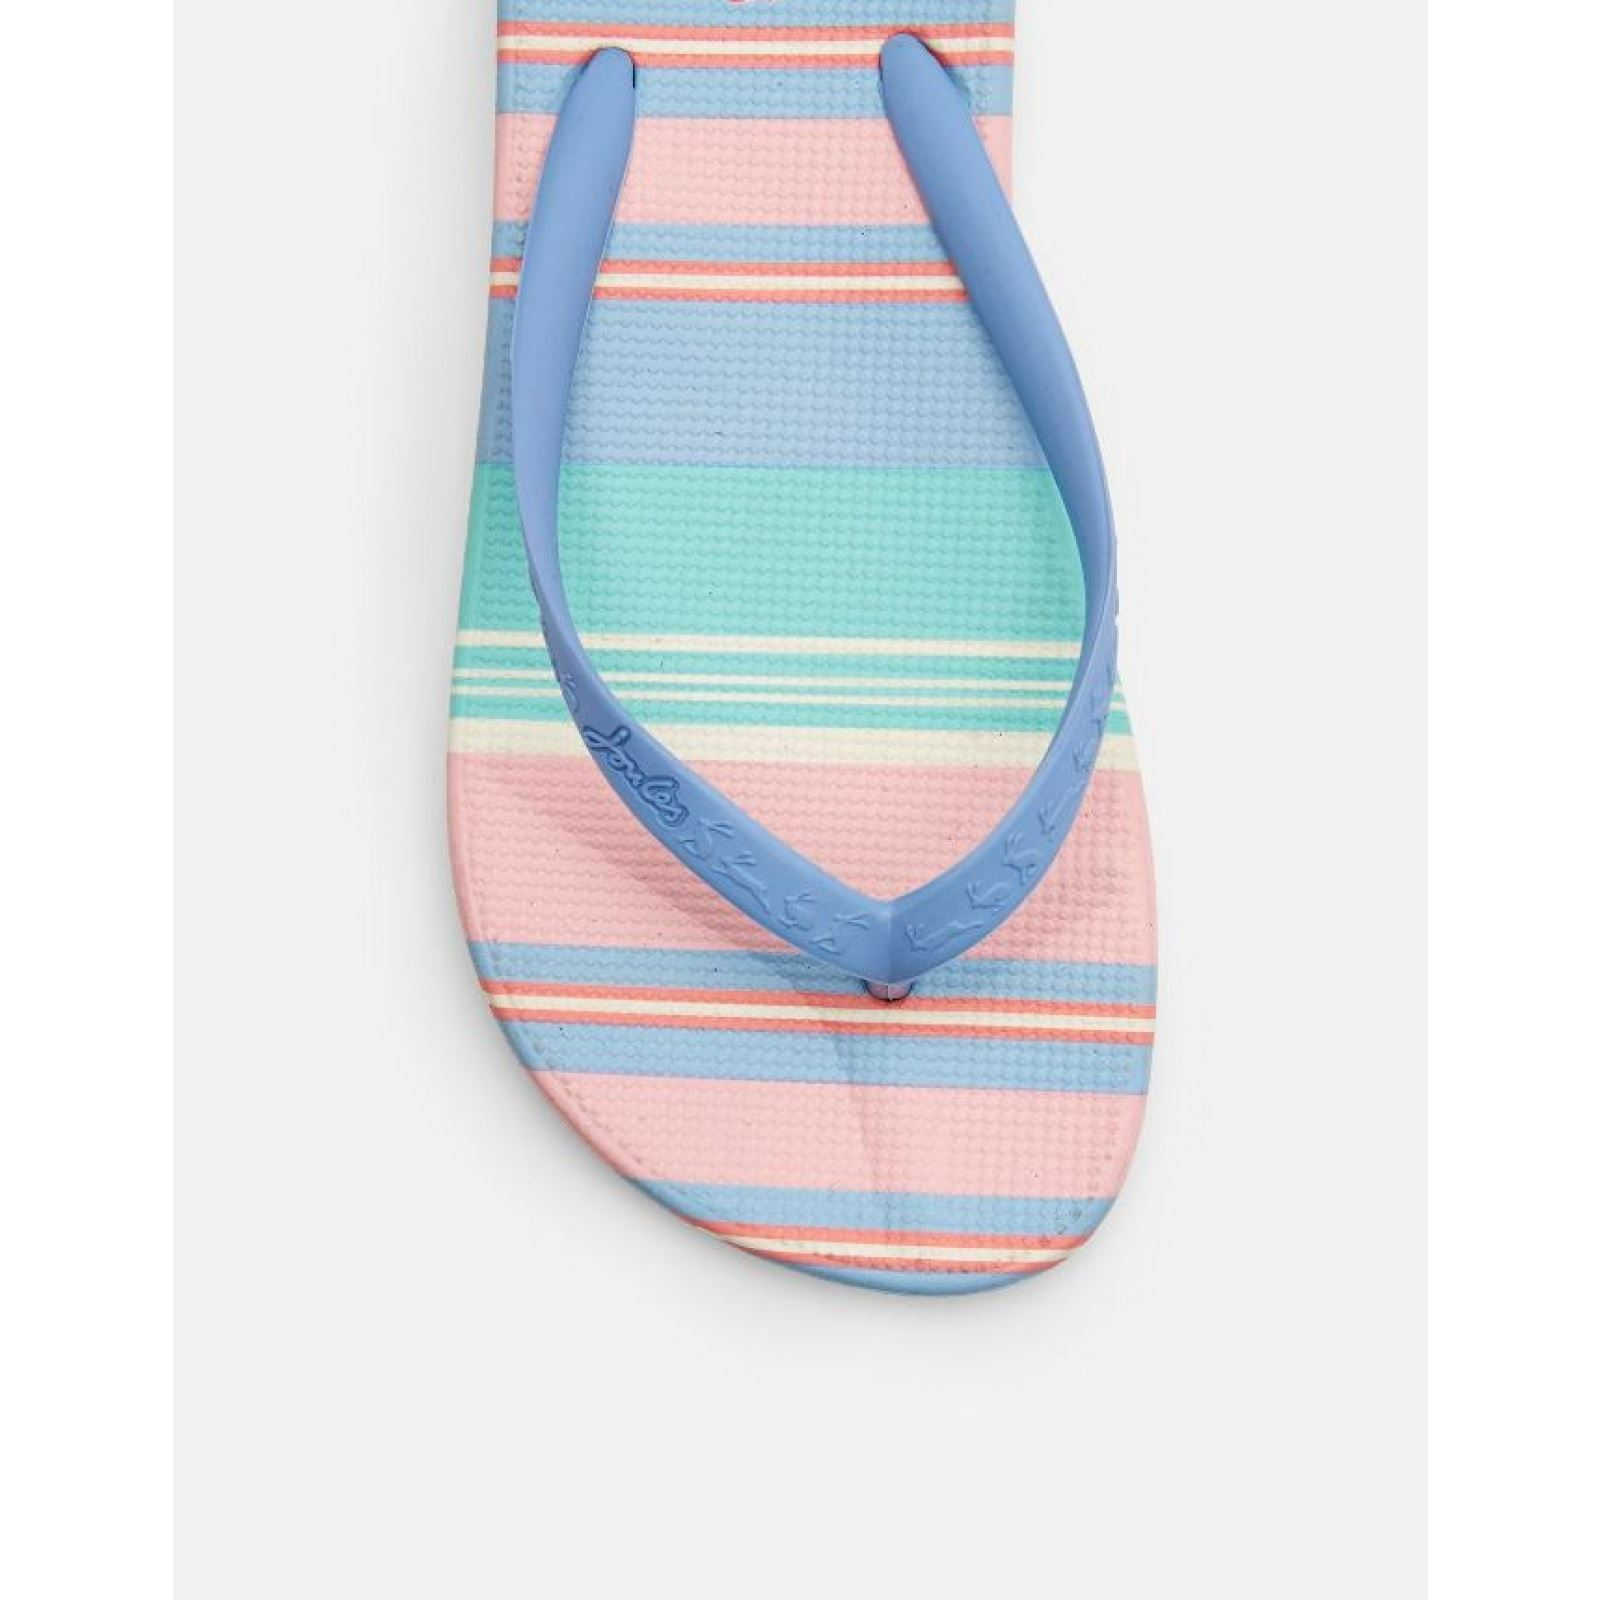 Joules-Flip-Flops-Sandals-Summer-Flip-Flop-NEW-2019-COLOURS thumbnail 30